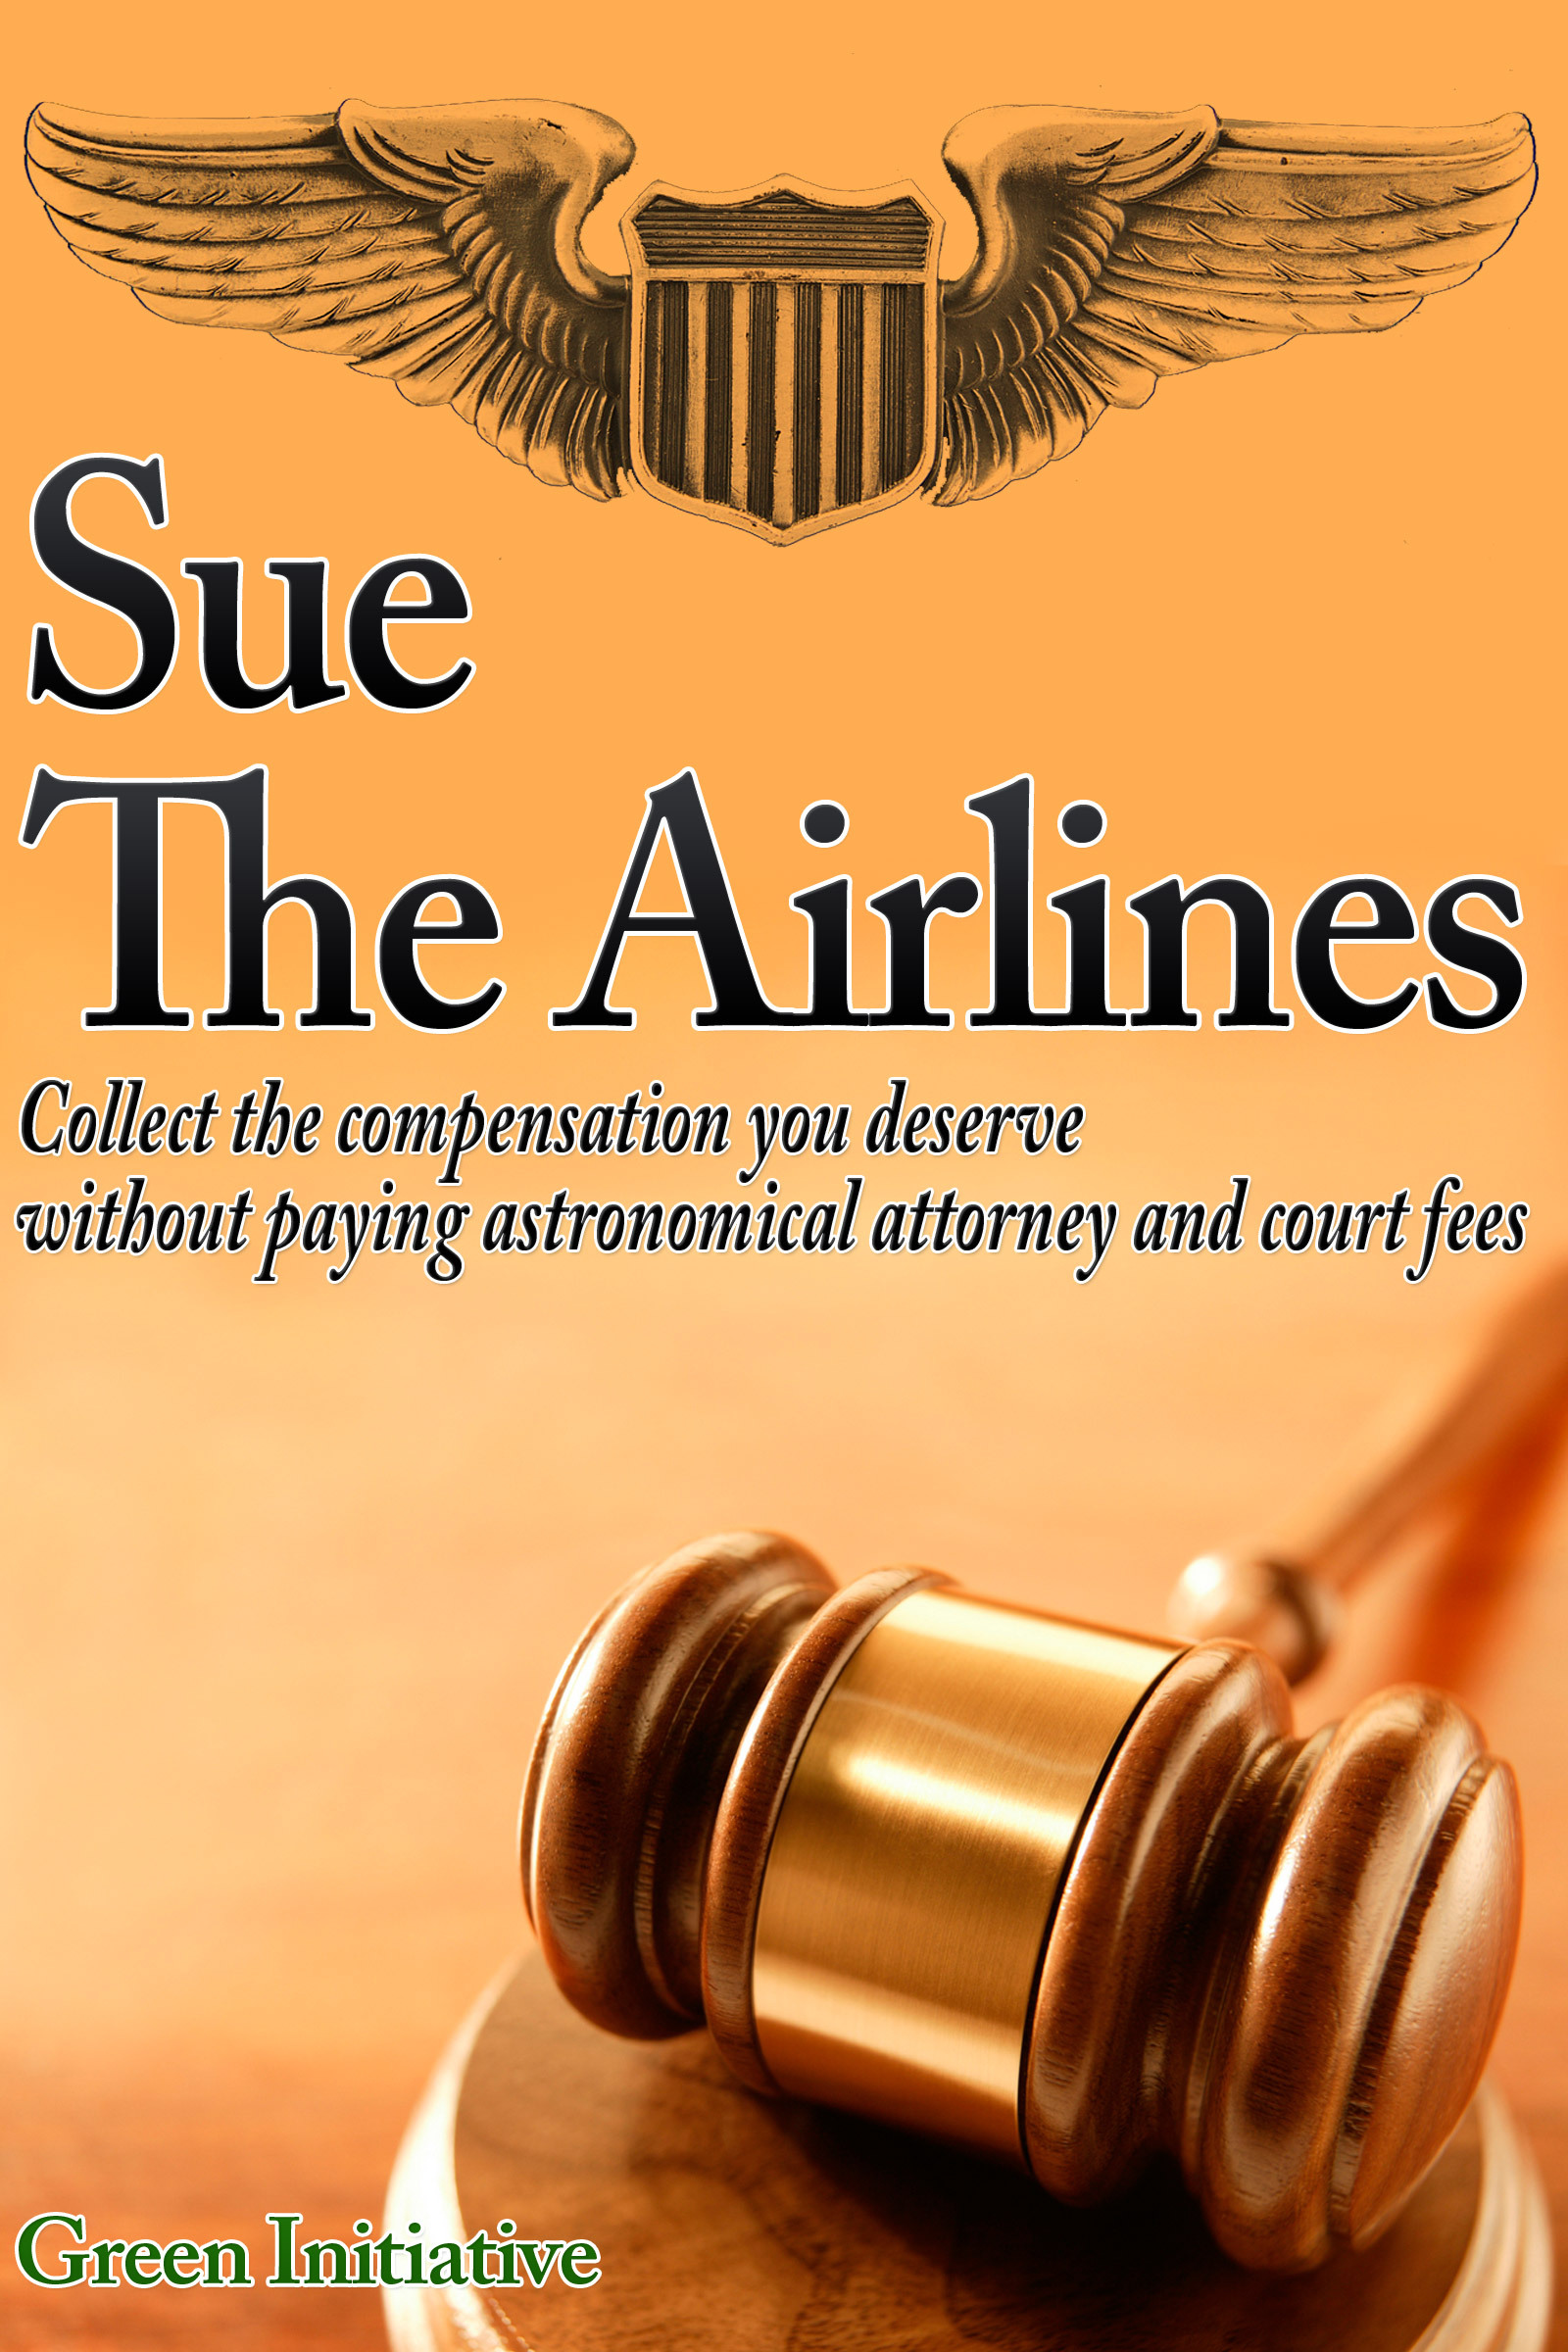 Sue the Airline: A Guide to Filing Airline Complaints. Collect the Compensation You Deserve Without Paying Astronomical Attorney & Court Fees